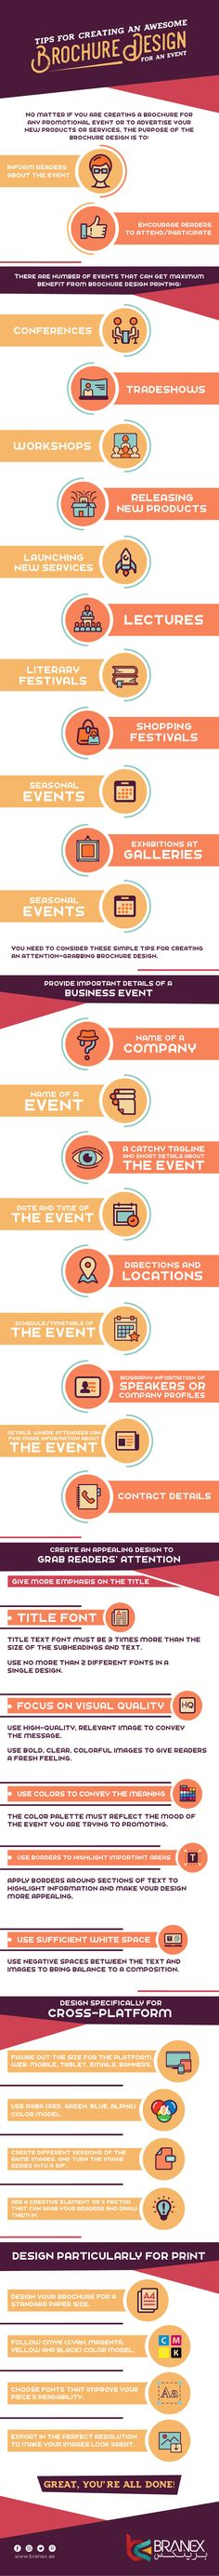 Tips for Creating an Awesome Brochure Design for any Event #Infographic #Design